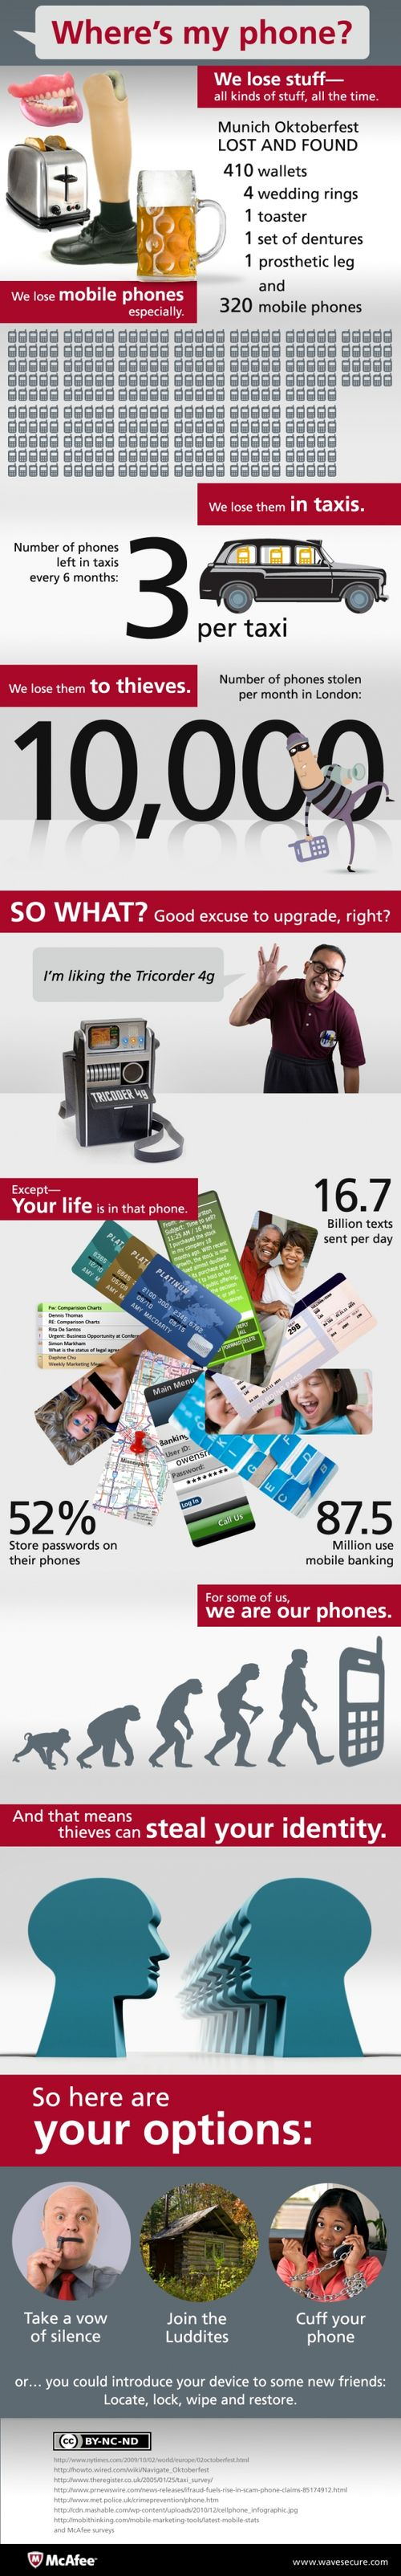 Mcafee_where_is_my_phone_infographic